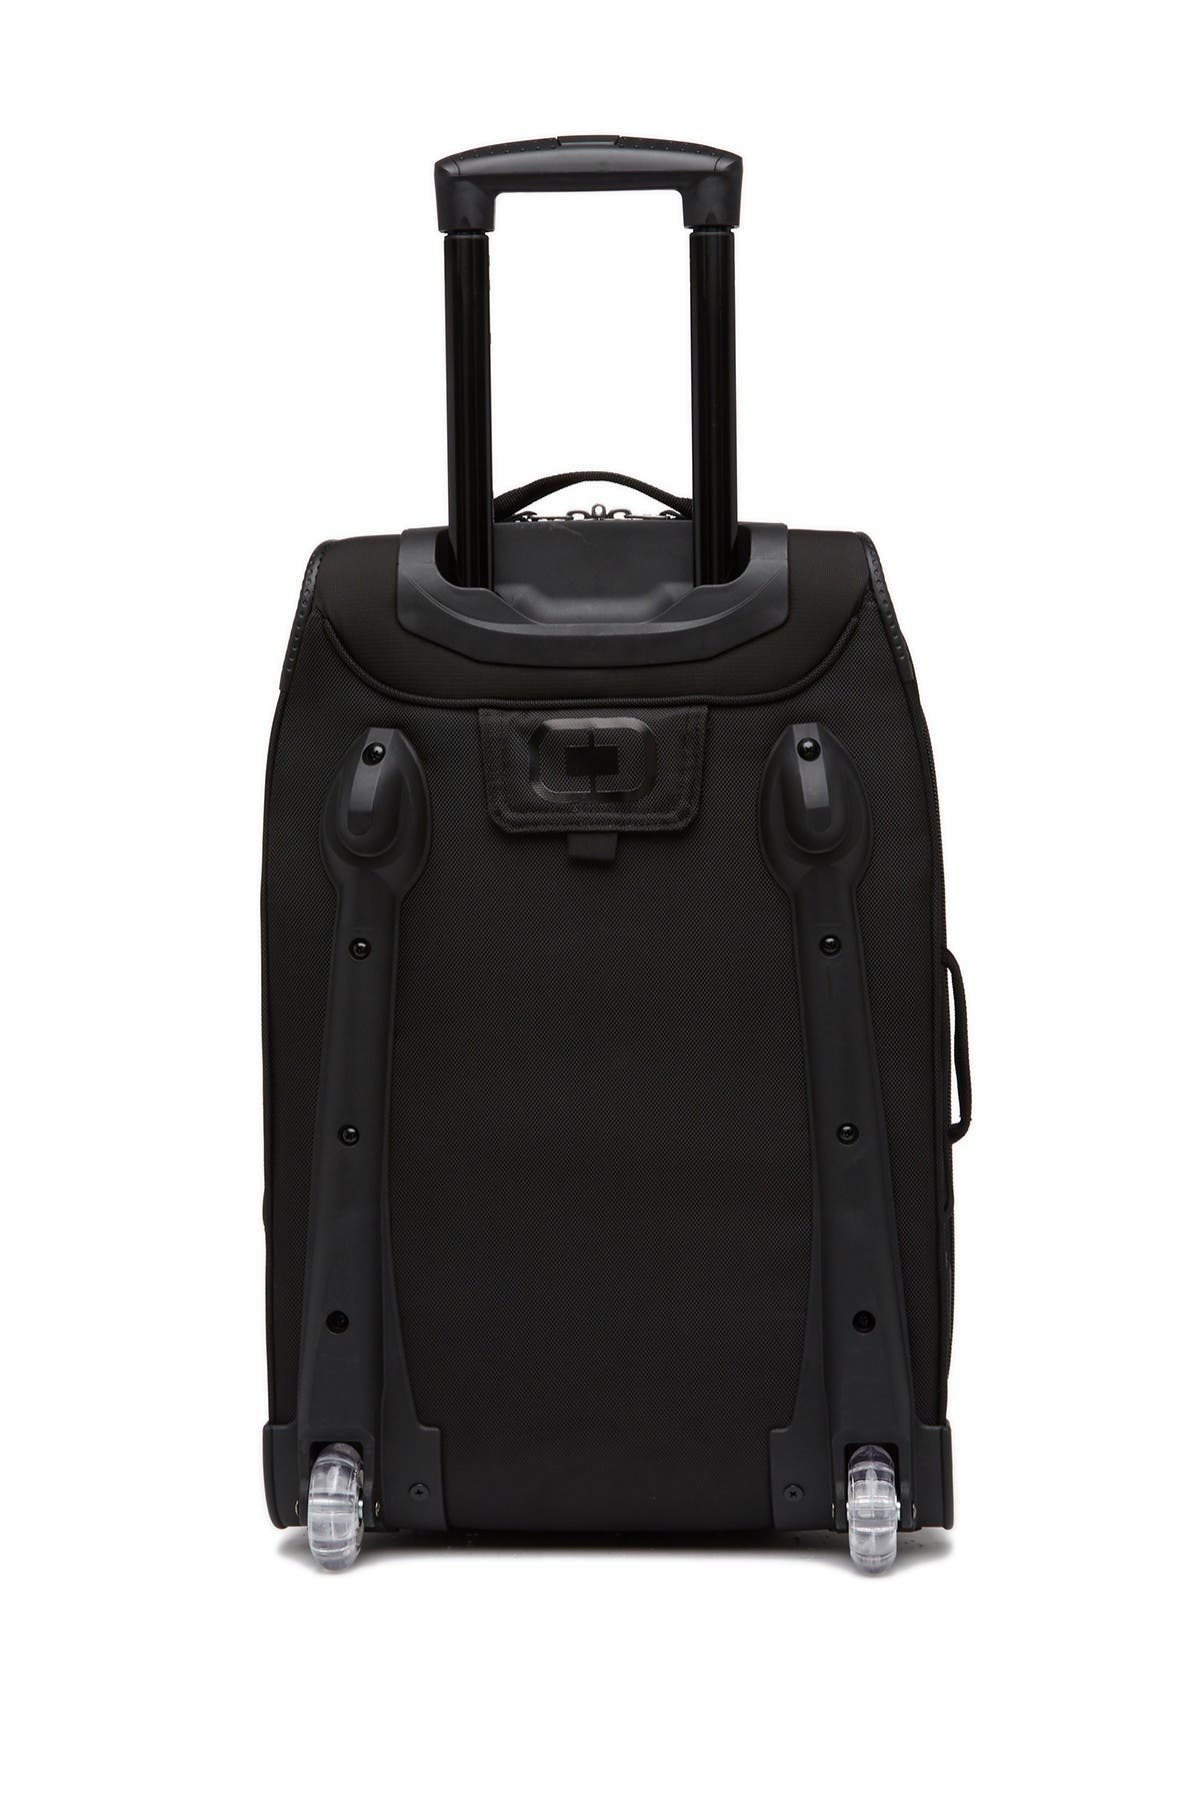 "Image of Ogio Kickstart 21.5"" Carry-On Wheeled Luggage"